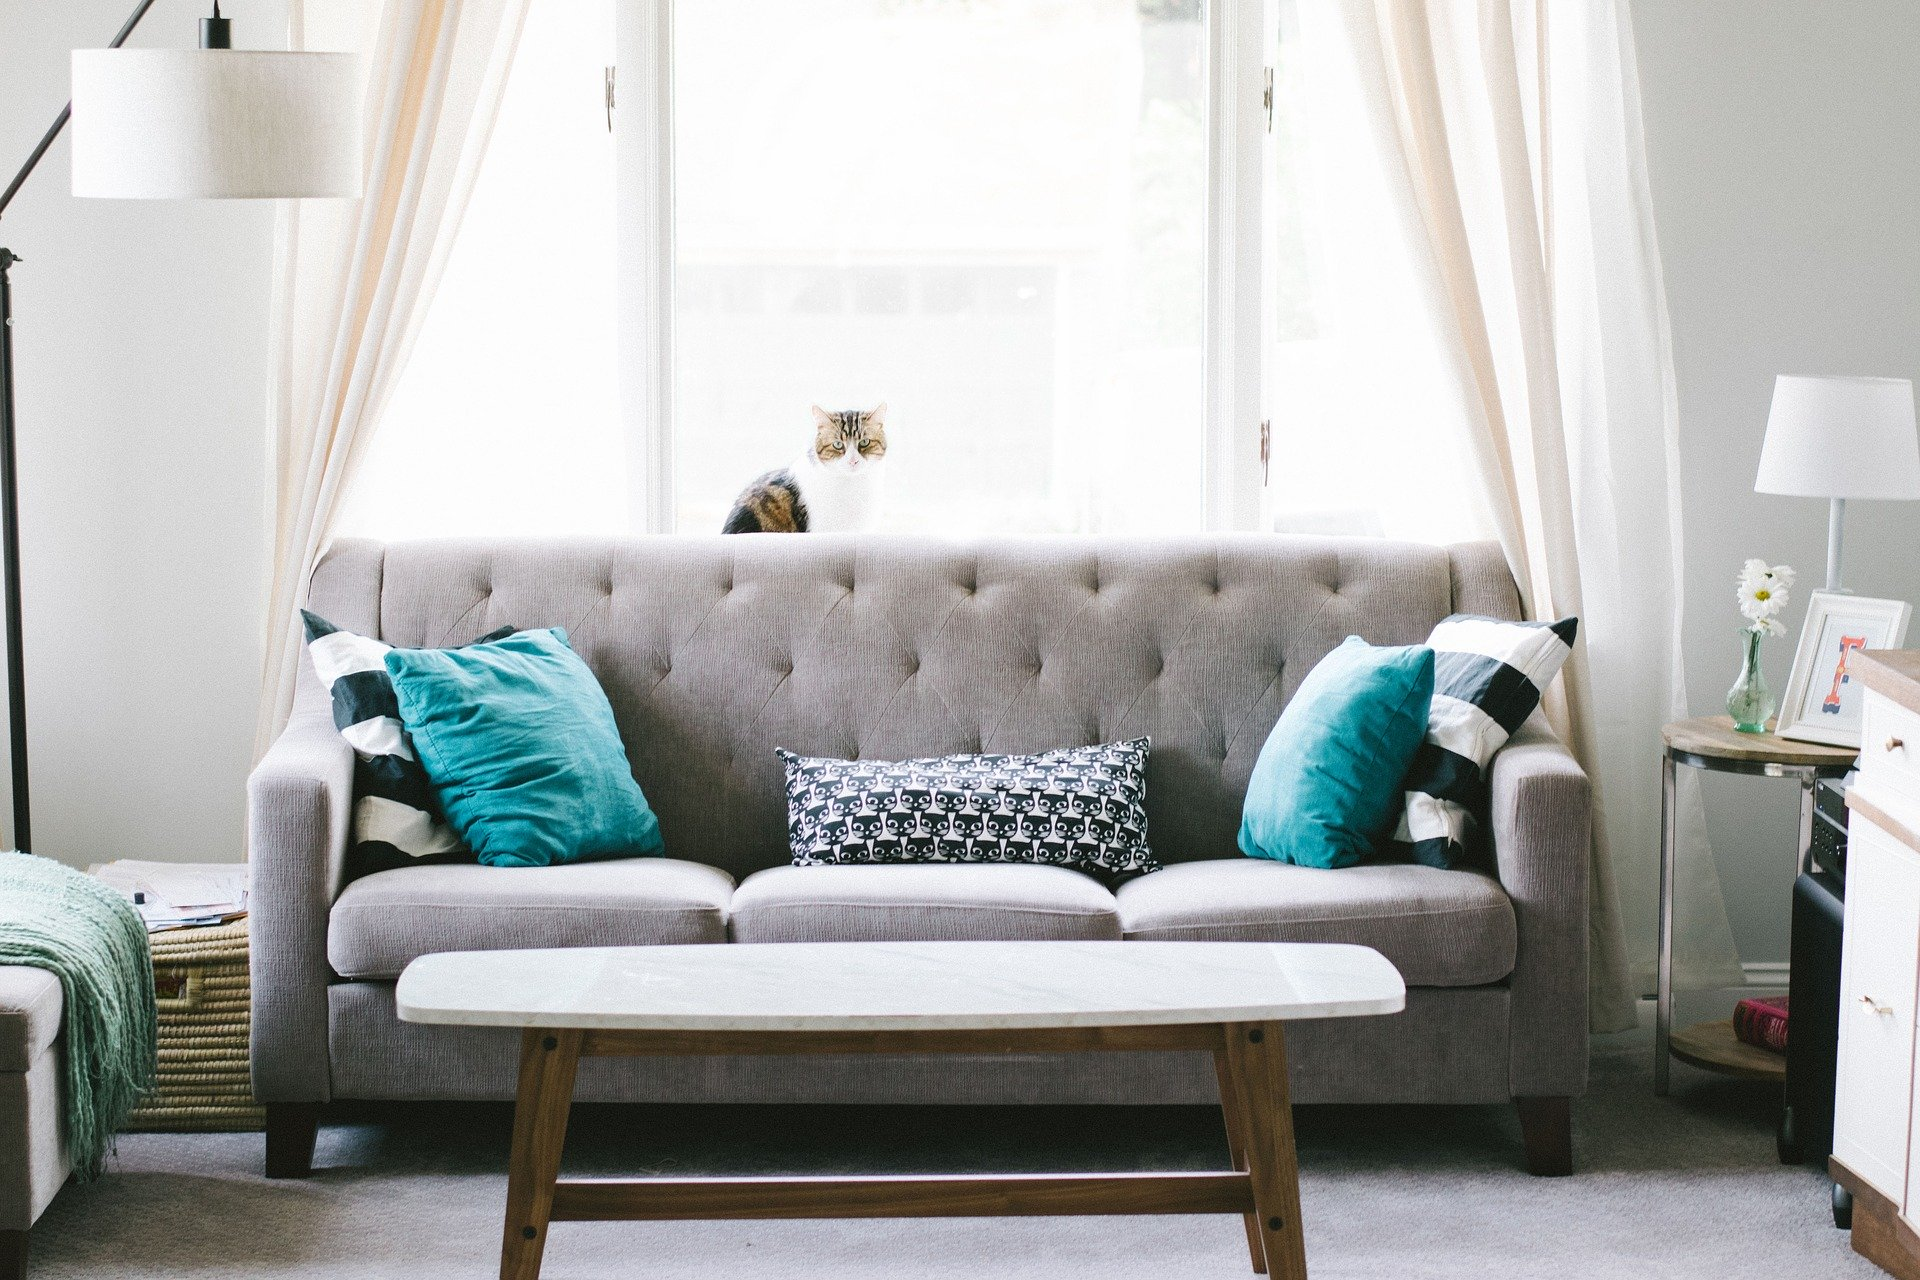 Hacks to Keep Your Family Home Looking Like New